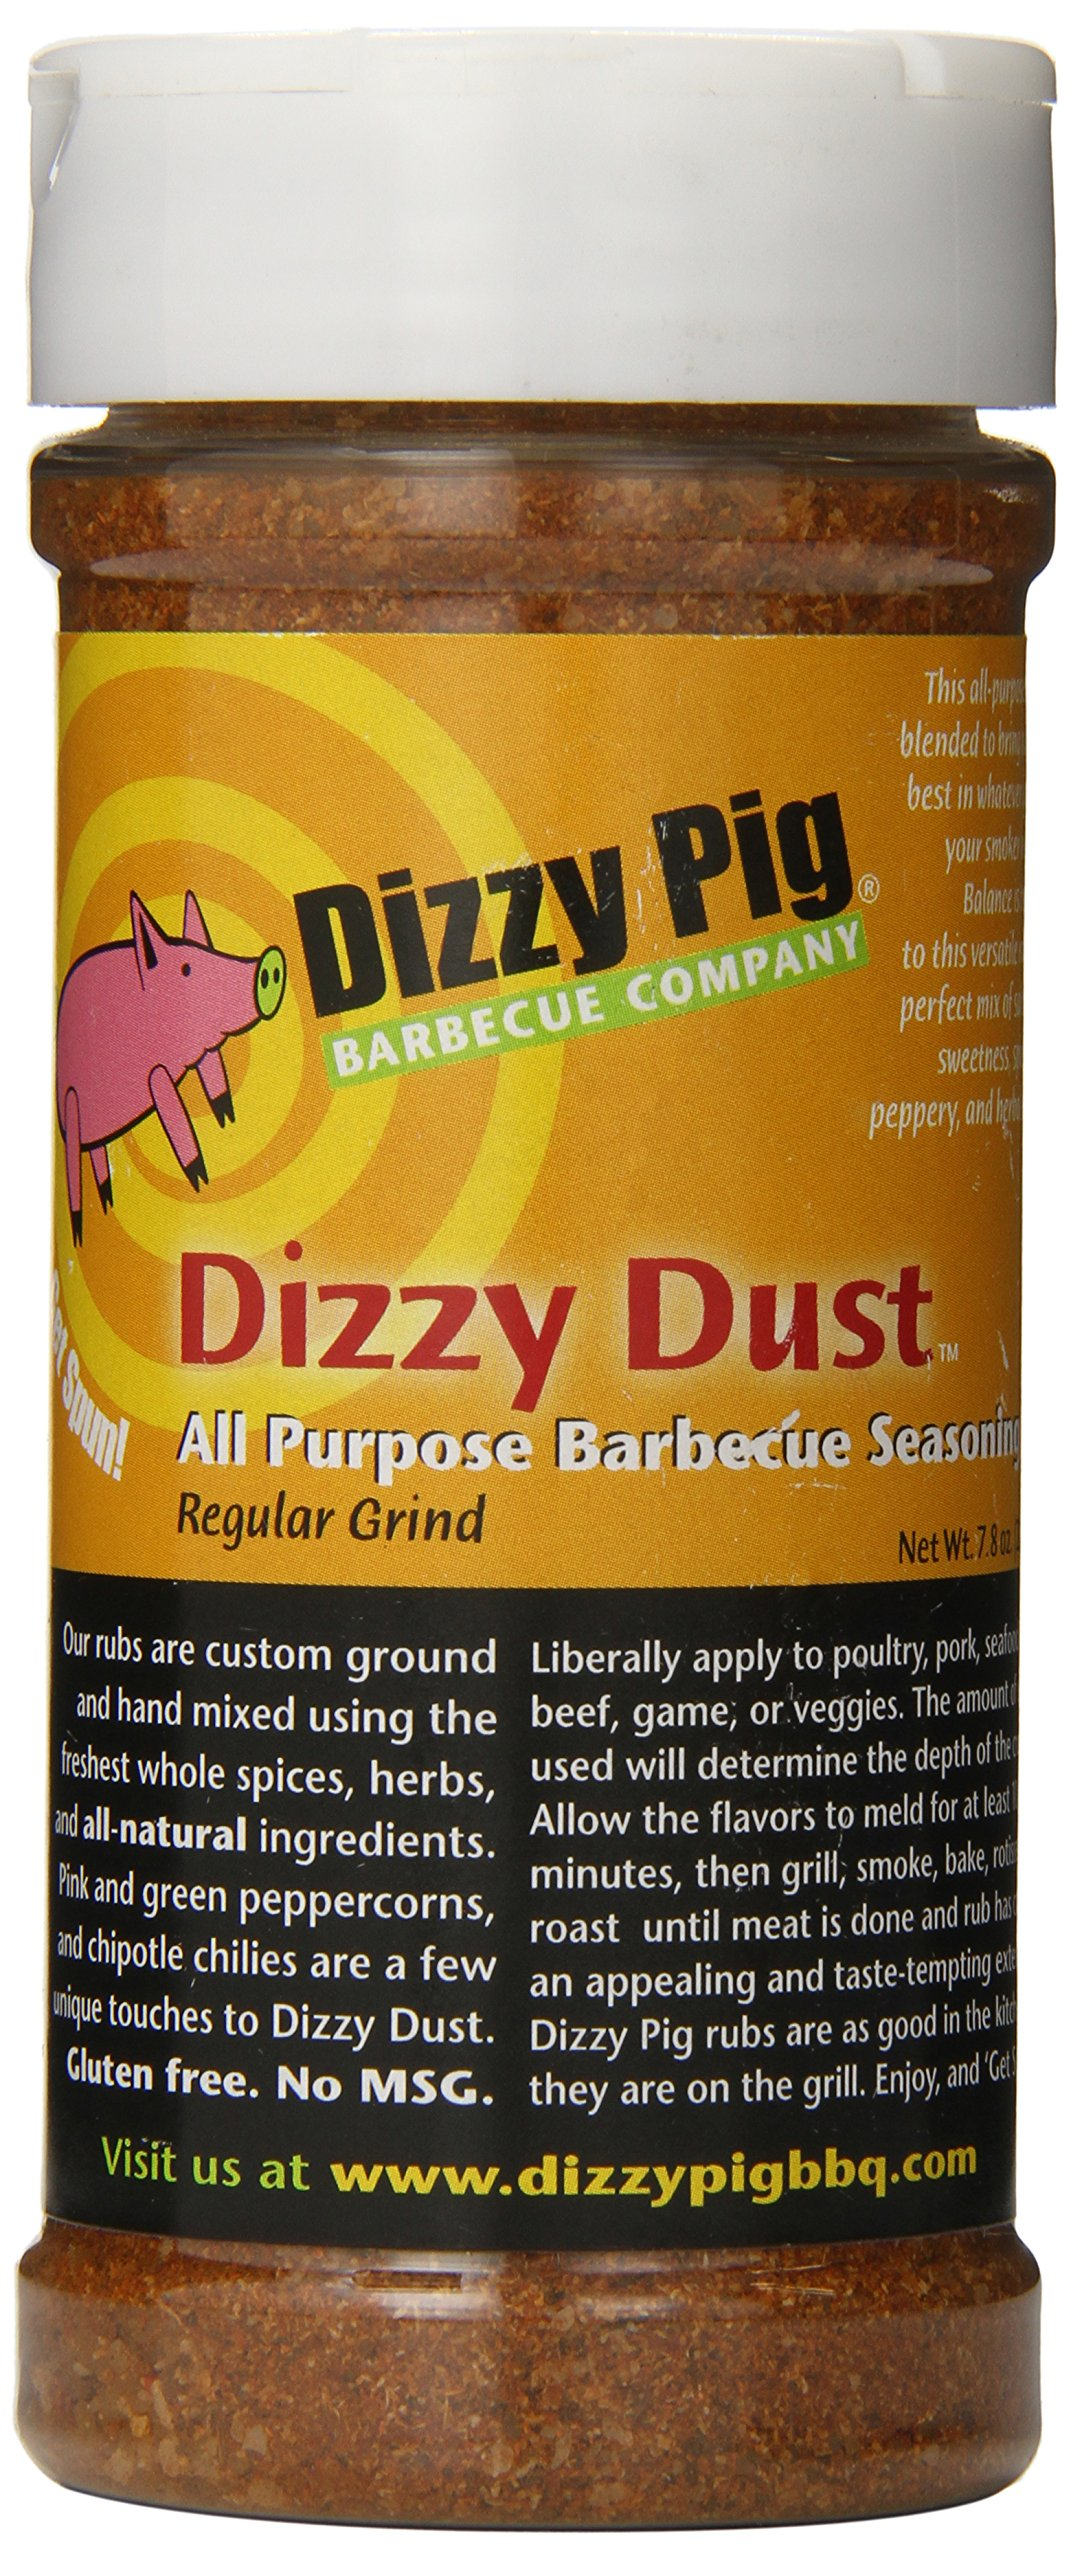 Dizzy pig cow lick canadian bacon